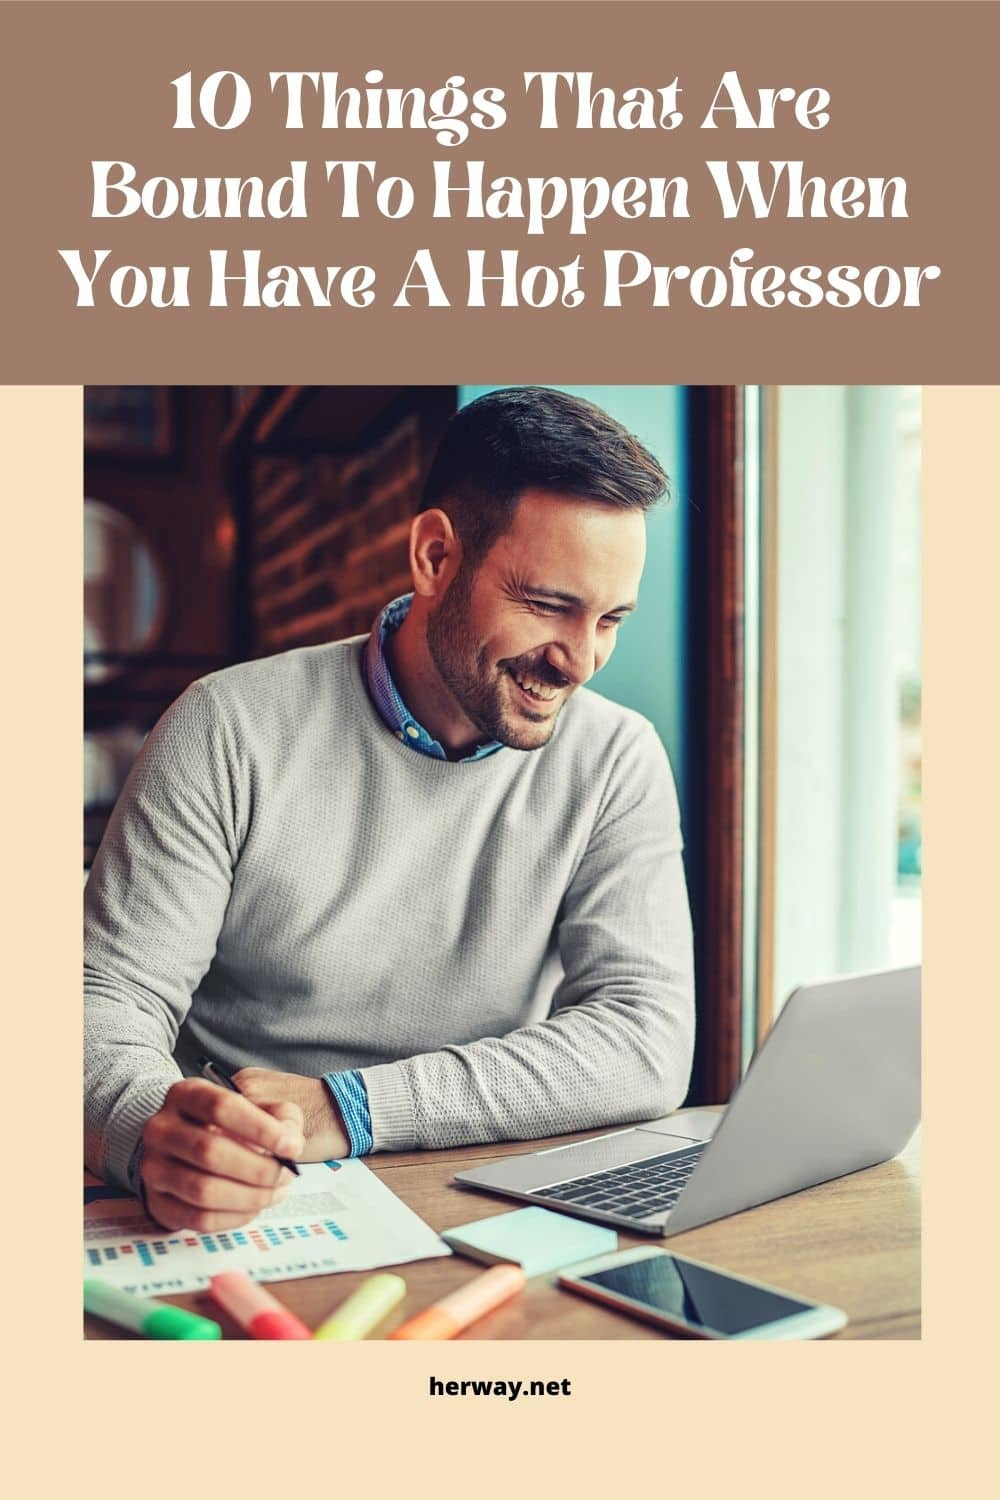 10 Things That Are Bound To Happen When You Have A Hot Professor